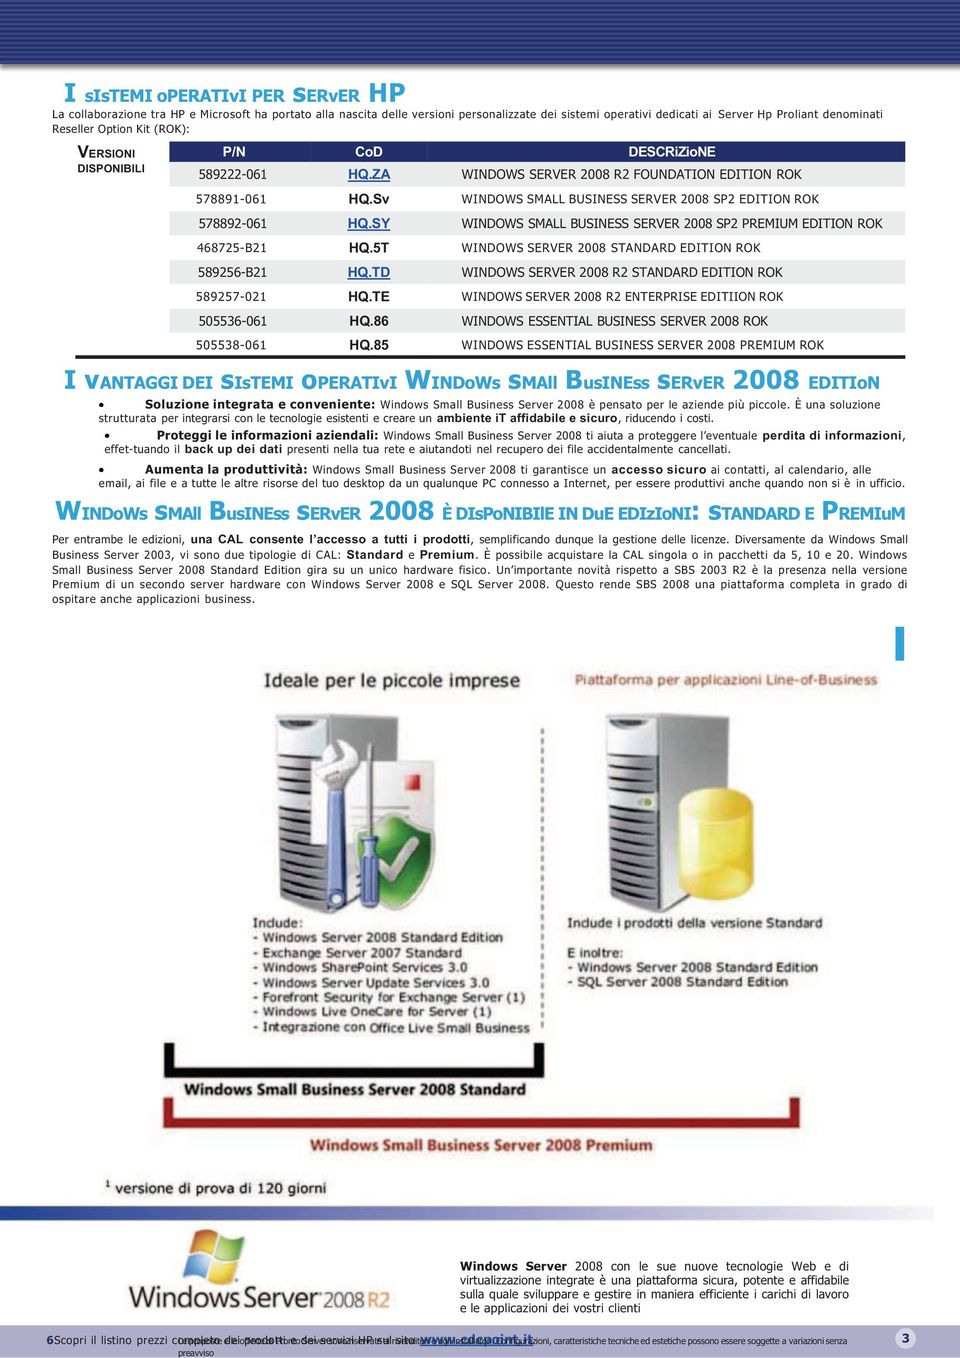 Sv WINDOWS SMALL BUSINESS SERVER 2008 SP2 EDITION ROK 578892-061 HQ.SY WINDOWS SMALL BUSINESS SERVER 2008 SP2 PREMIUM EDITION ROK 468725-B21 HQ.